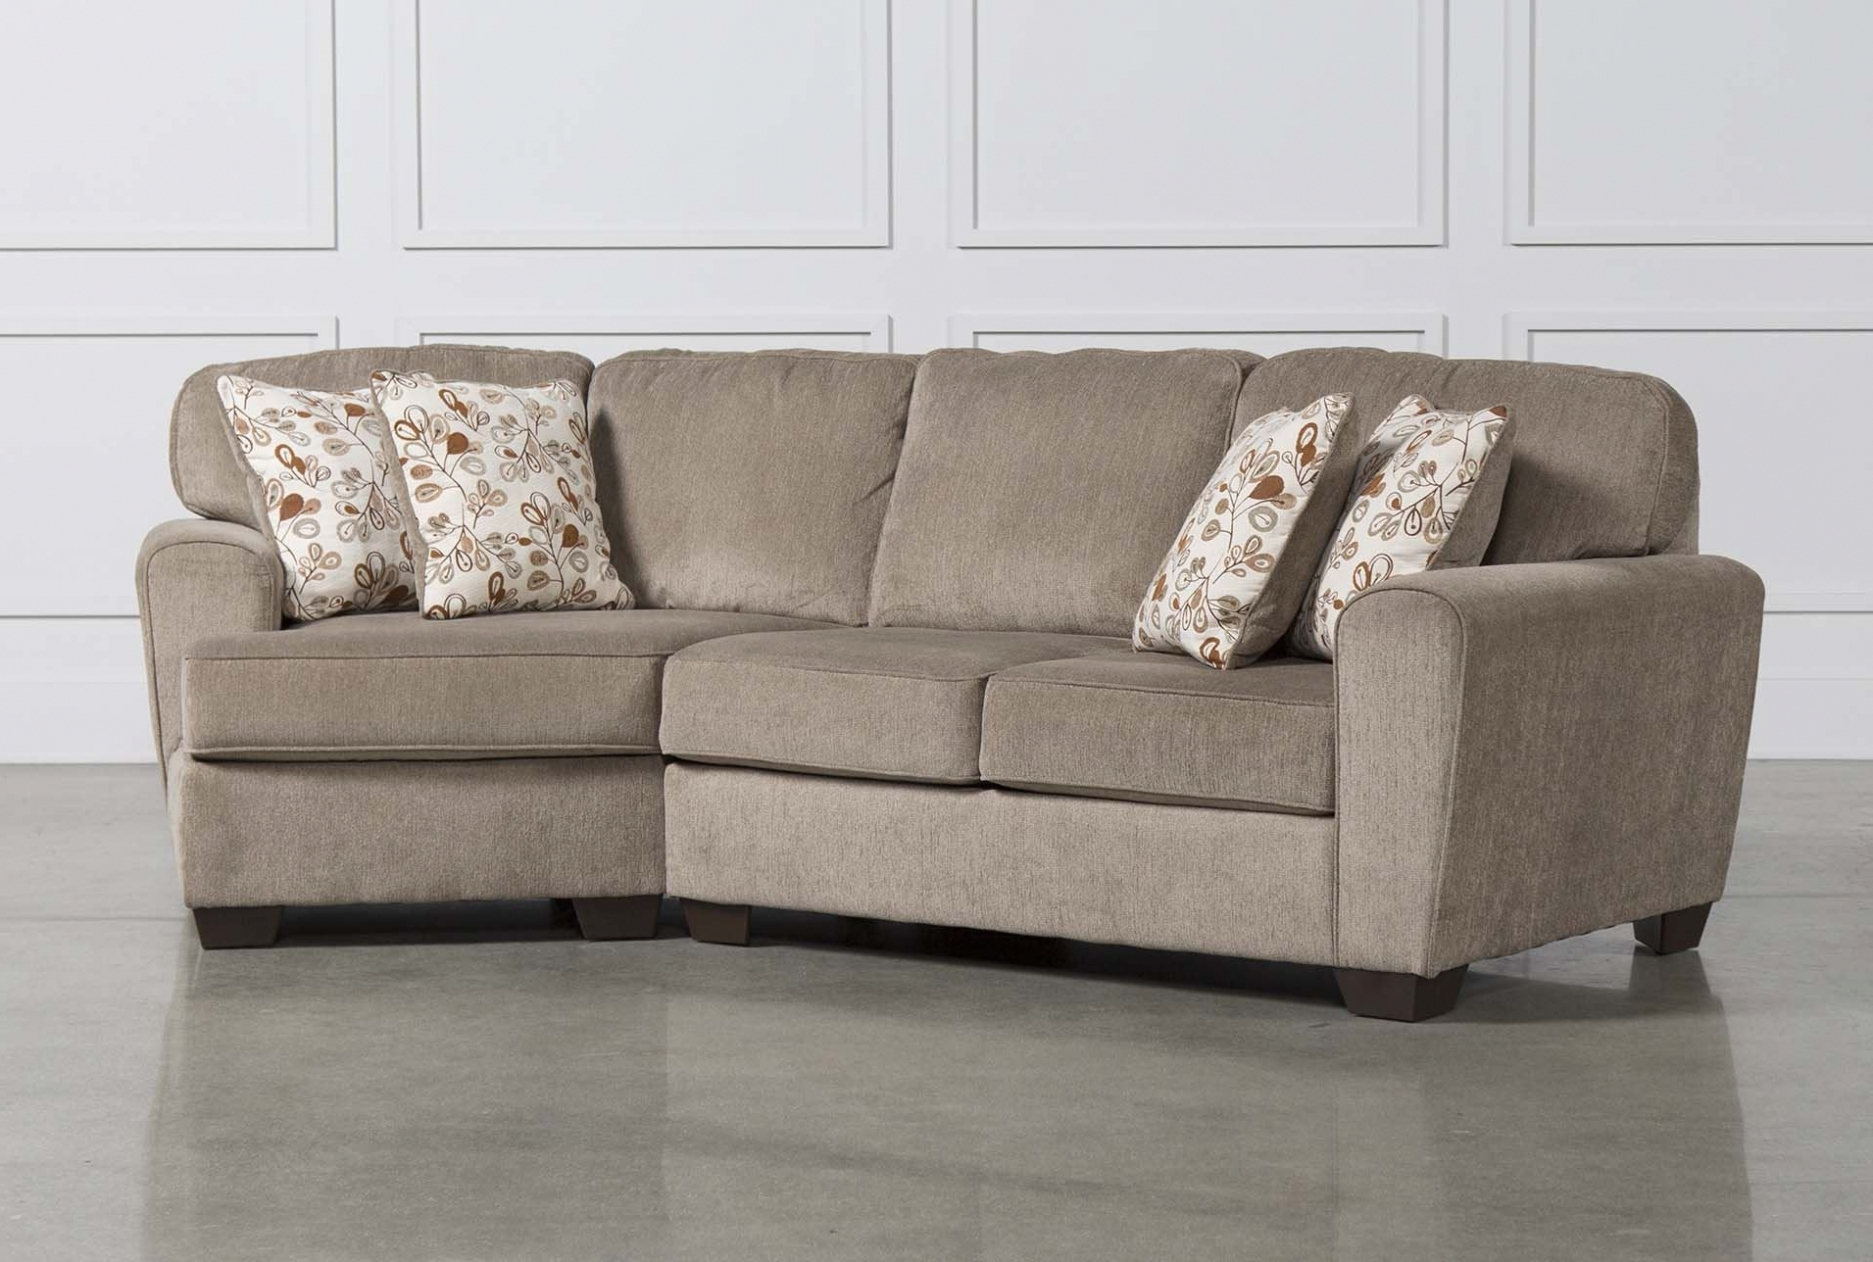 Sectional Sofas With Cuddler Chaise In Recent Furniture: Patola Park 4 Piece Sectional W Raf Cuddler Living (View 7 of 20)